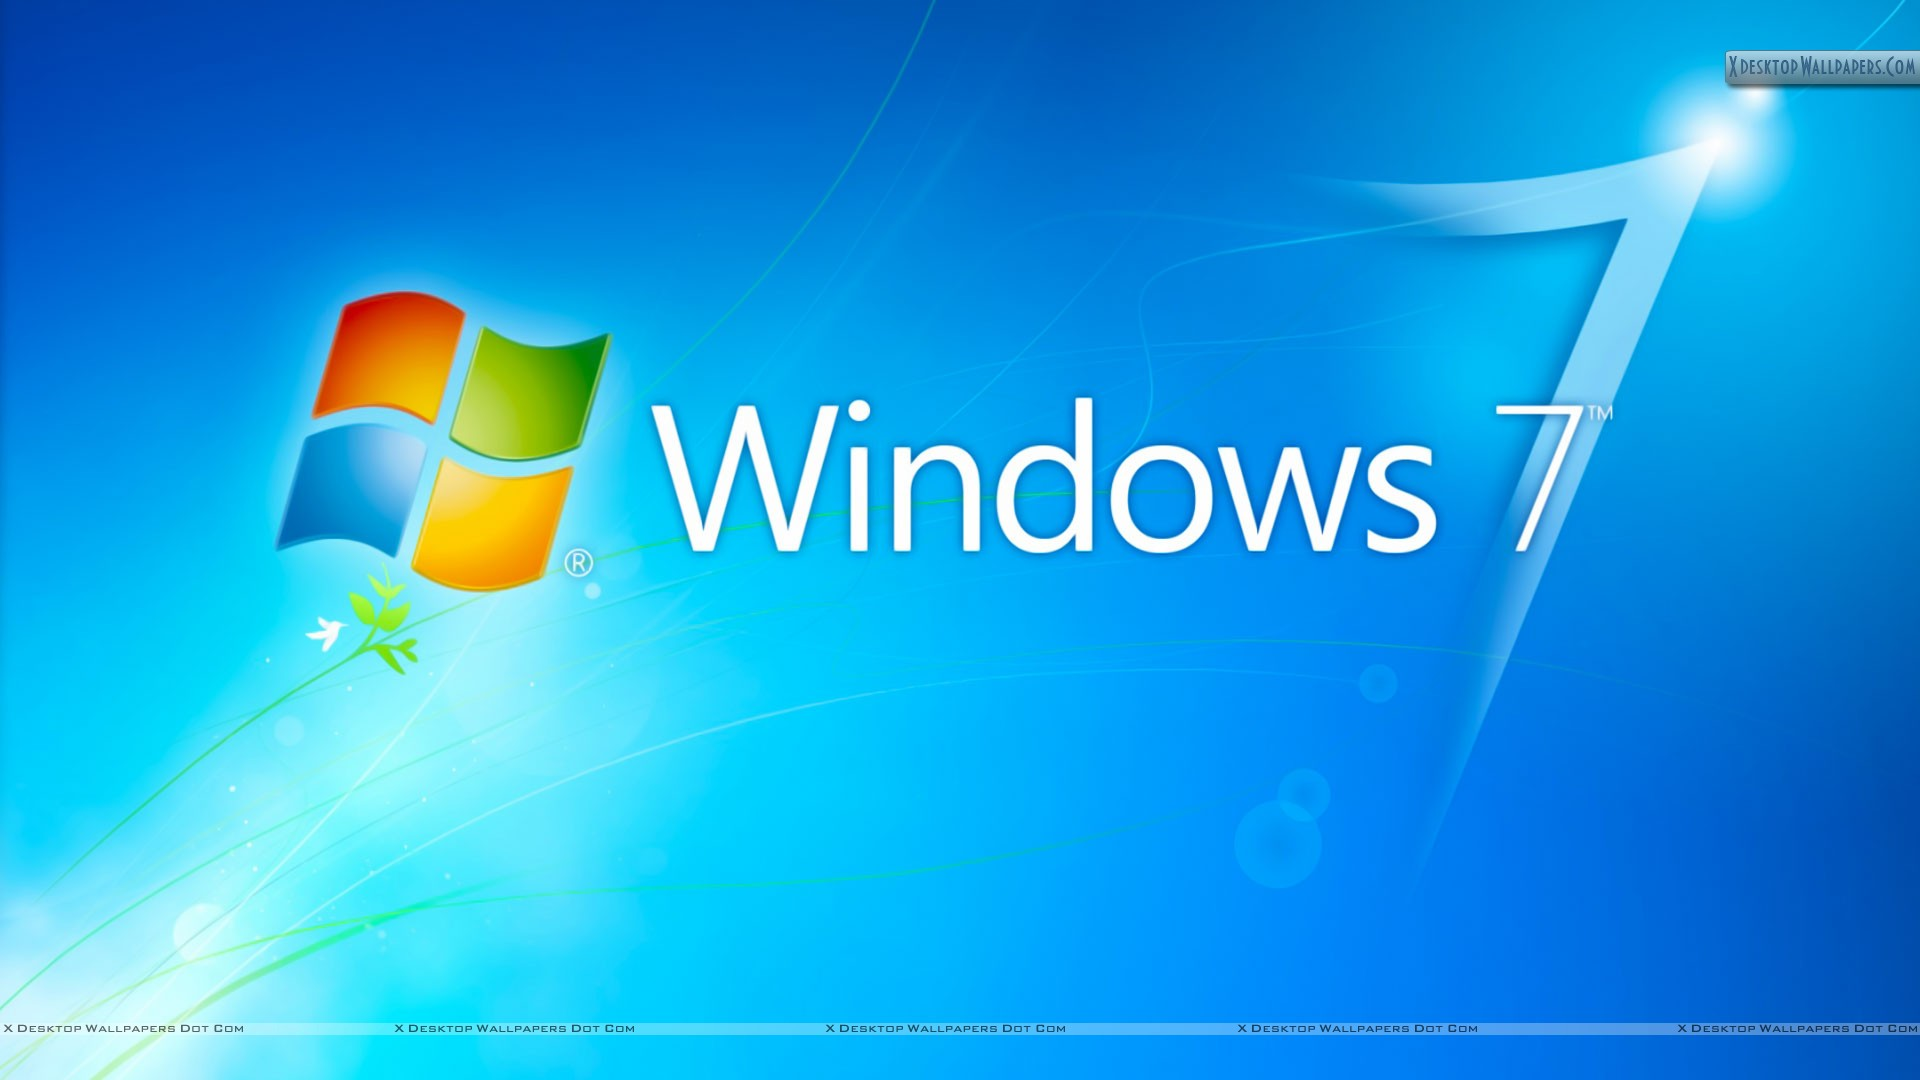 windows 7 hd blue background with logo wallpaper